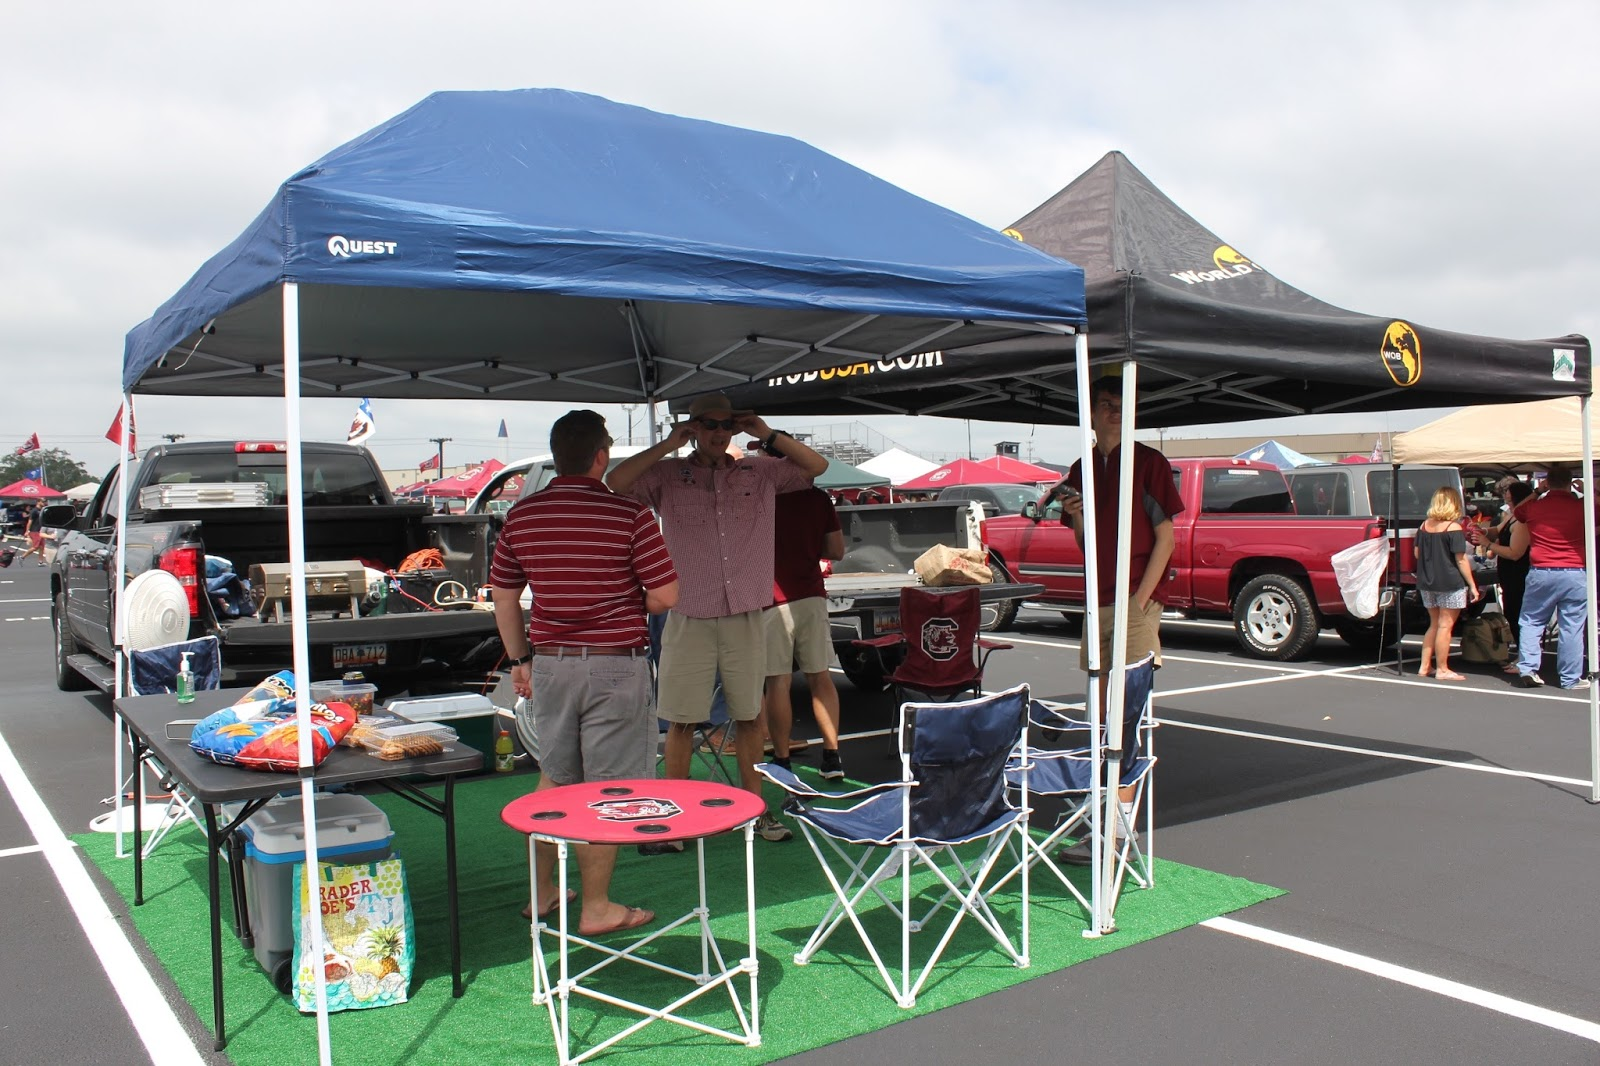 ... the tent is up and the grill is cooking something delicious that heu0027s prepared. I say that Kiawah is my happy place. Tailgating at a USC game is ... & Magnolia u0026 Main: Week 3: USC vs ECU